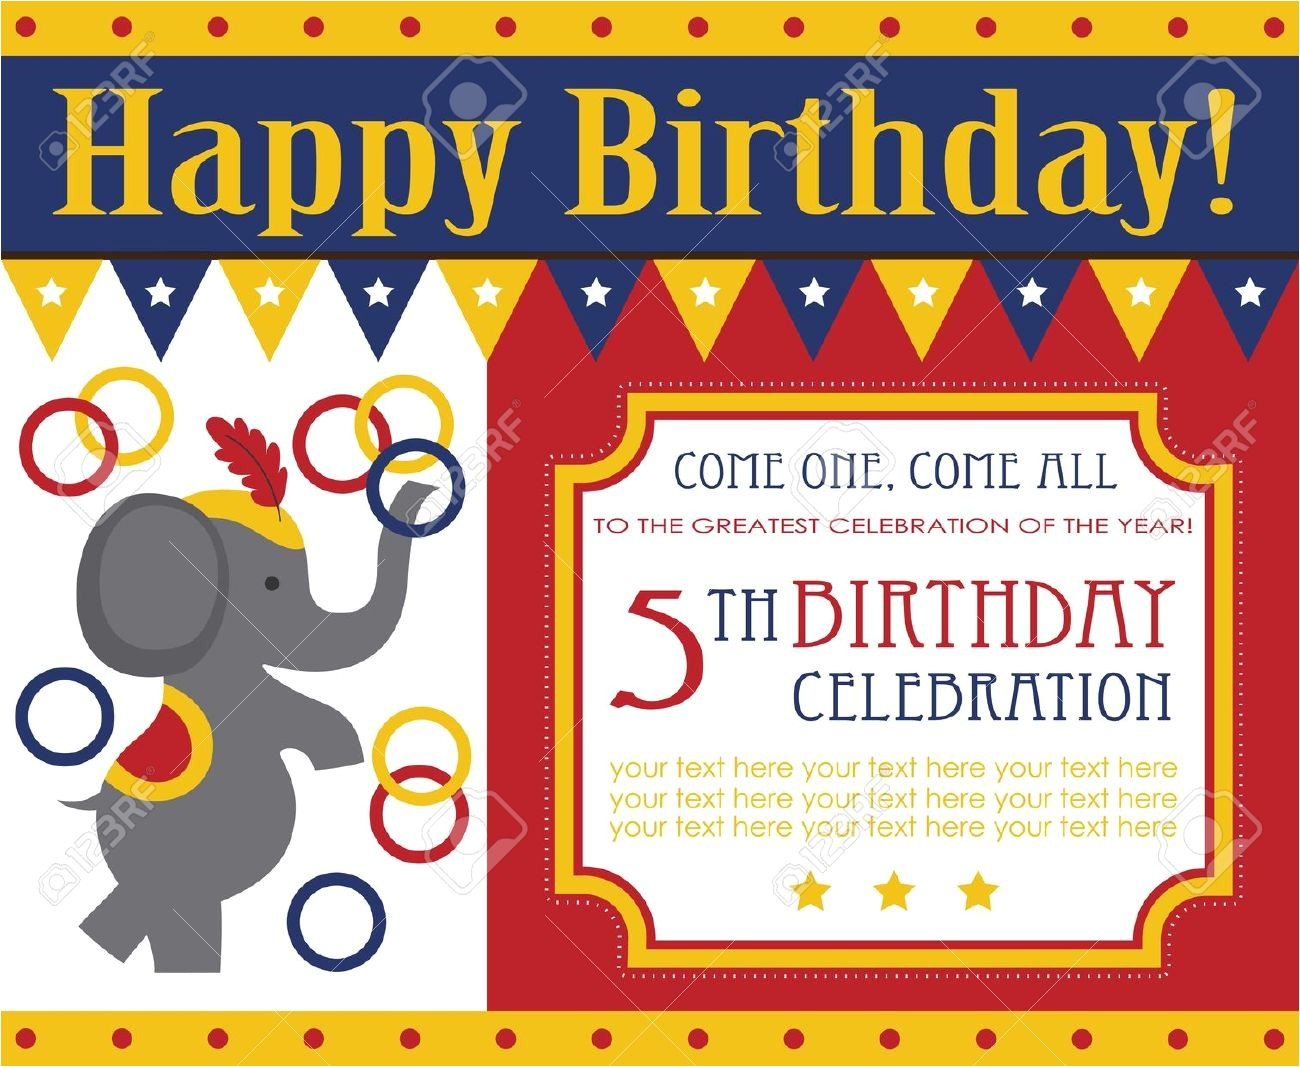 Birthday Invitation Cards Bangalore Kid Birthday Invitation Card Template Lovely Birthday